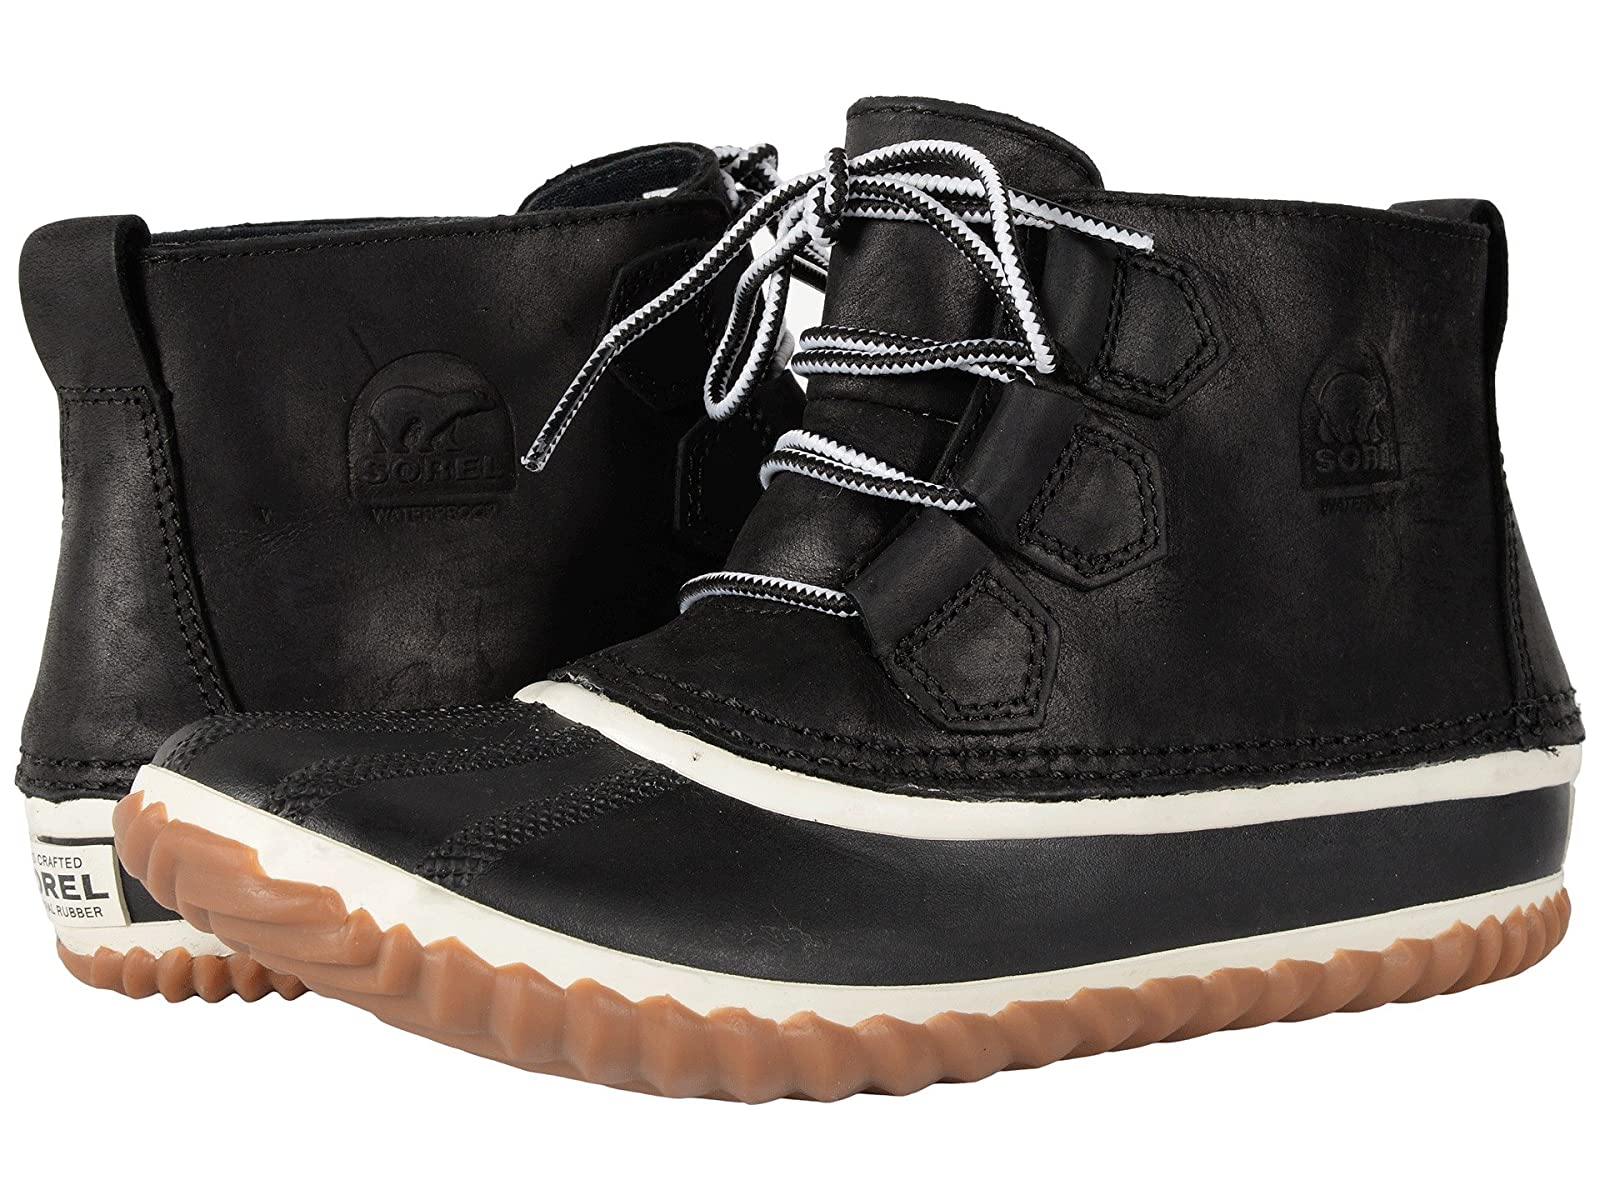 SOREL Out 'N About™ LeatherCheap and distinctive eye-catching shoes